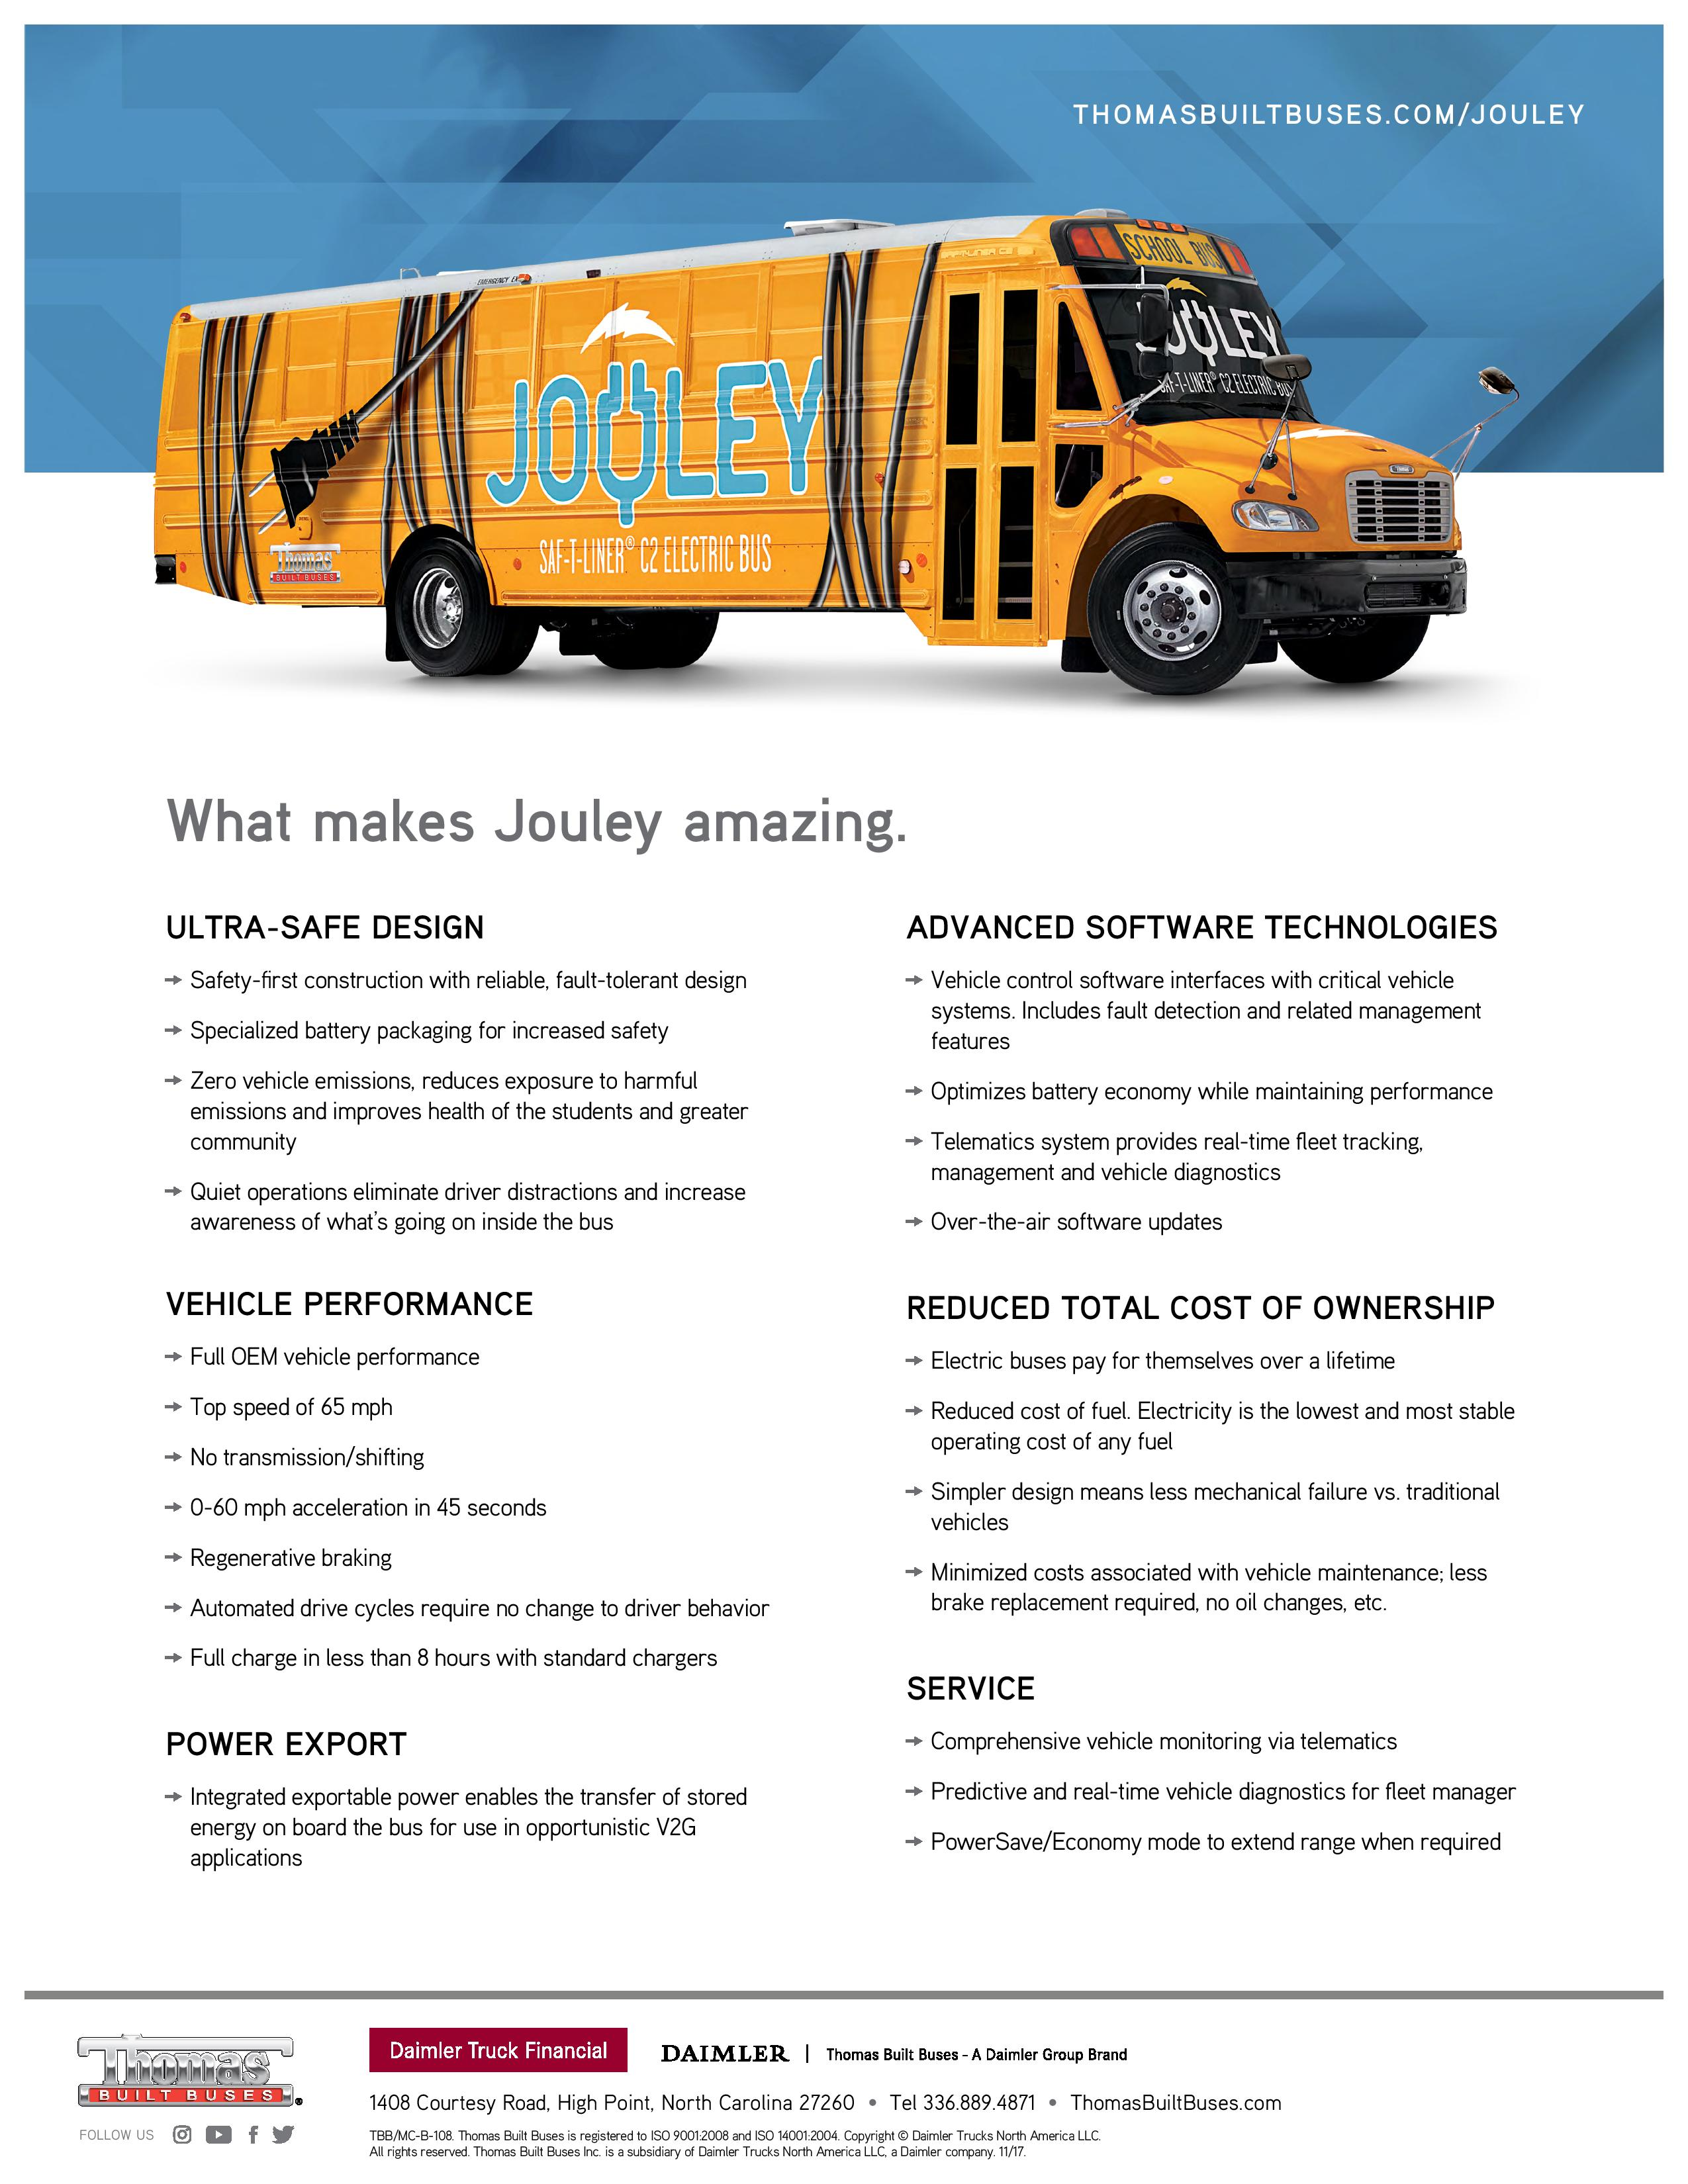 Jouley Electric C2 Bus Flyer